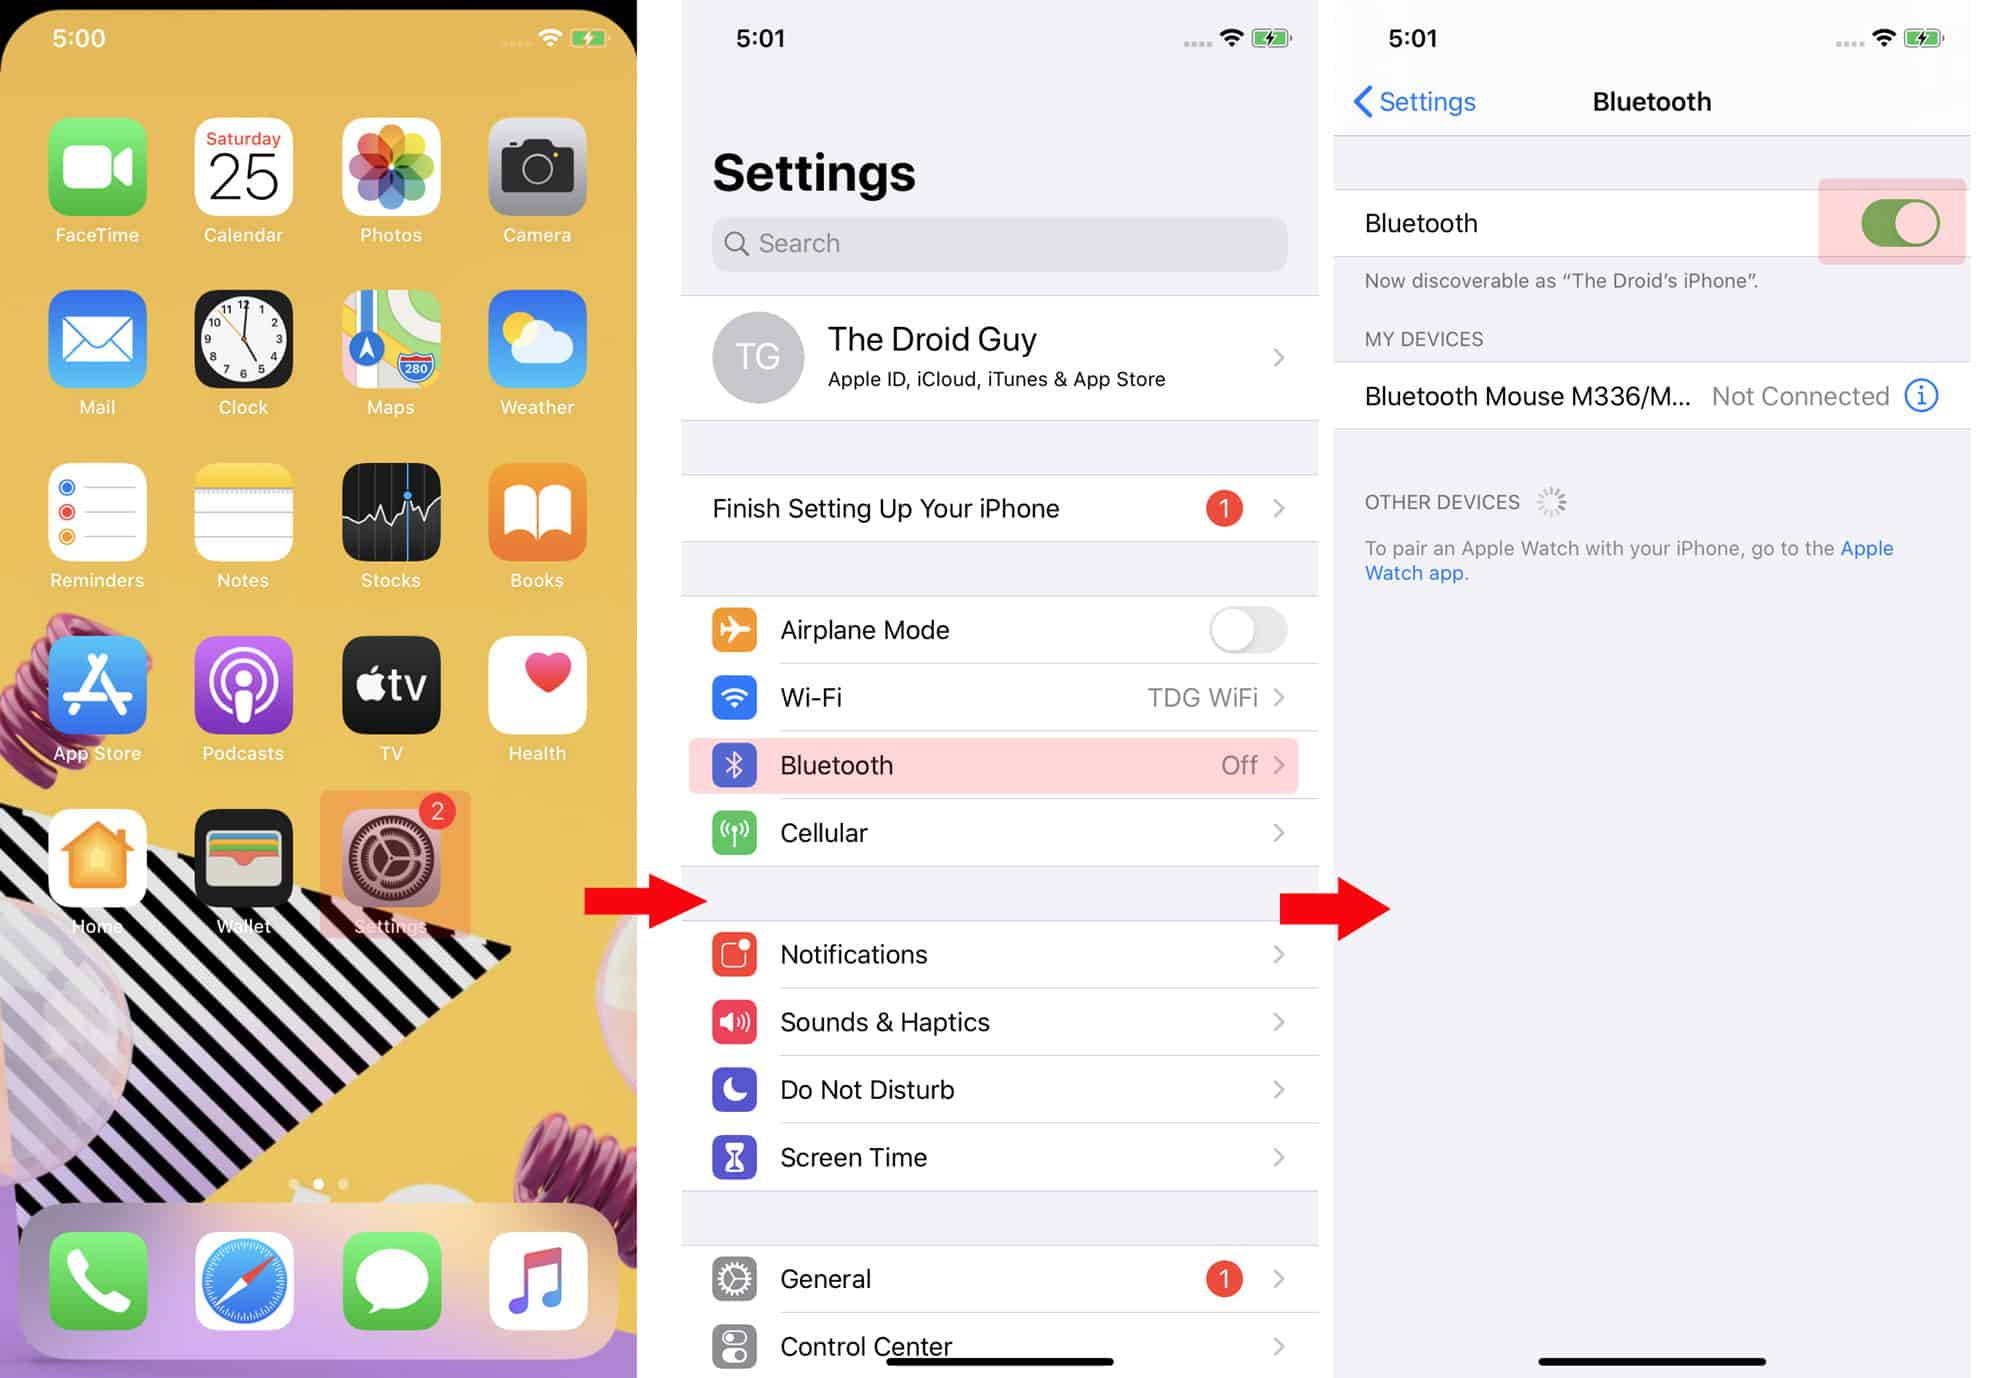 enable-bluetooth-iphone-ios-13-bluetooth-pairing-guide